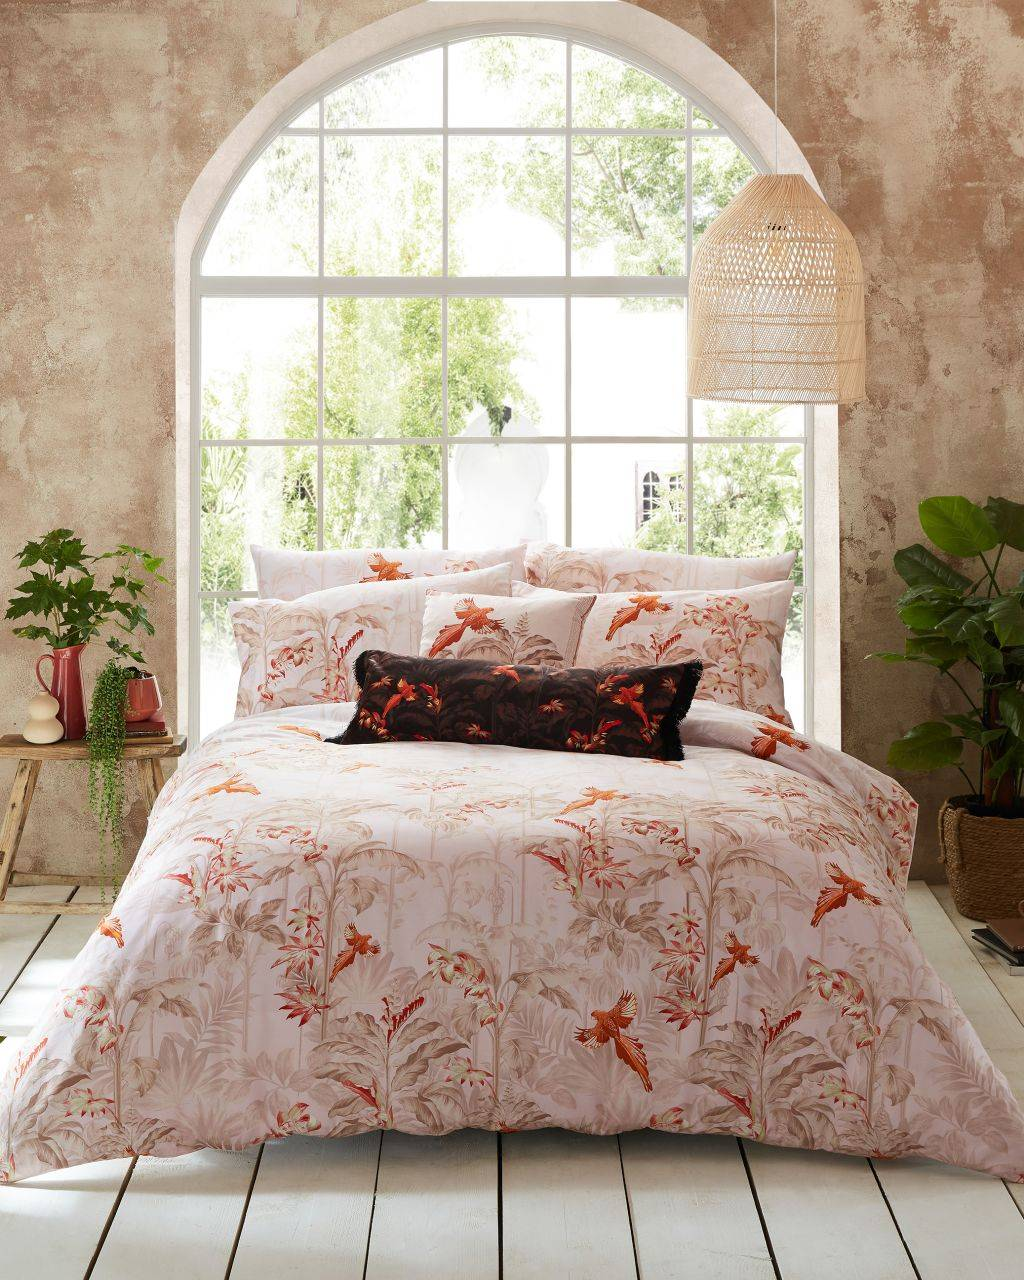 Ted Baker Rhapsody Double Quilt Cover 200cm X 200cm  - Pink - Size: One Size